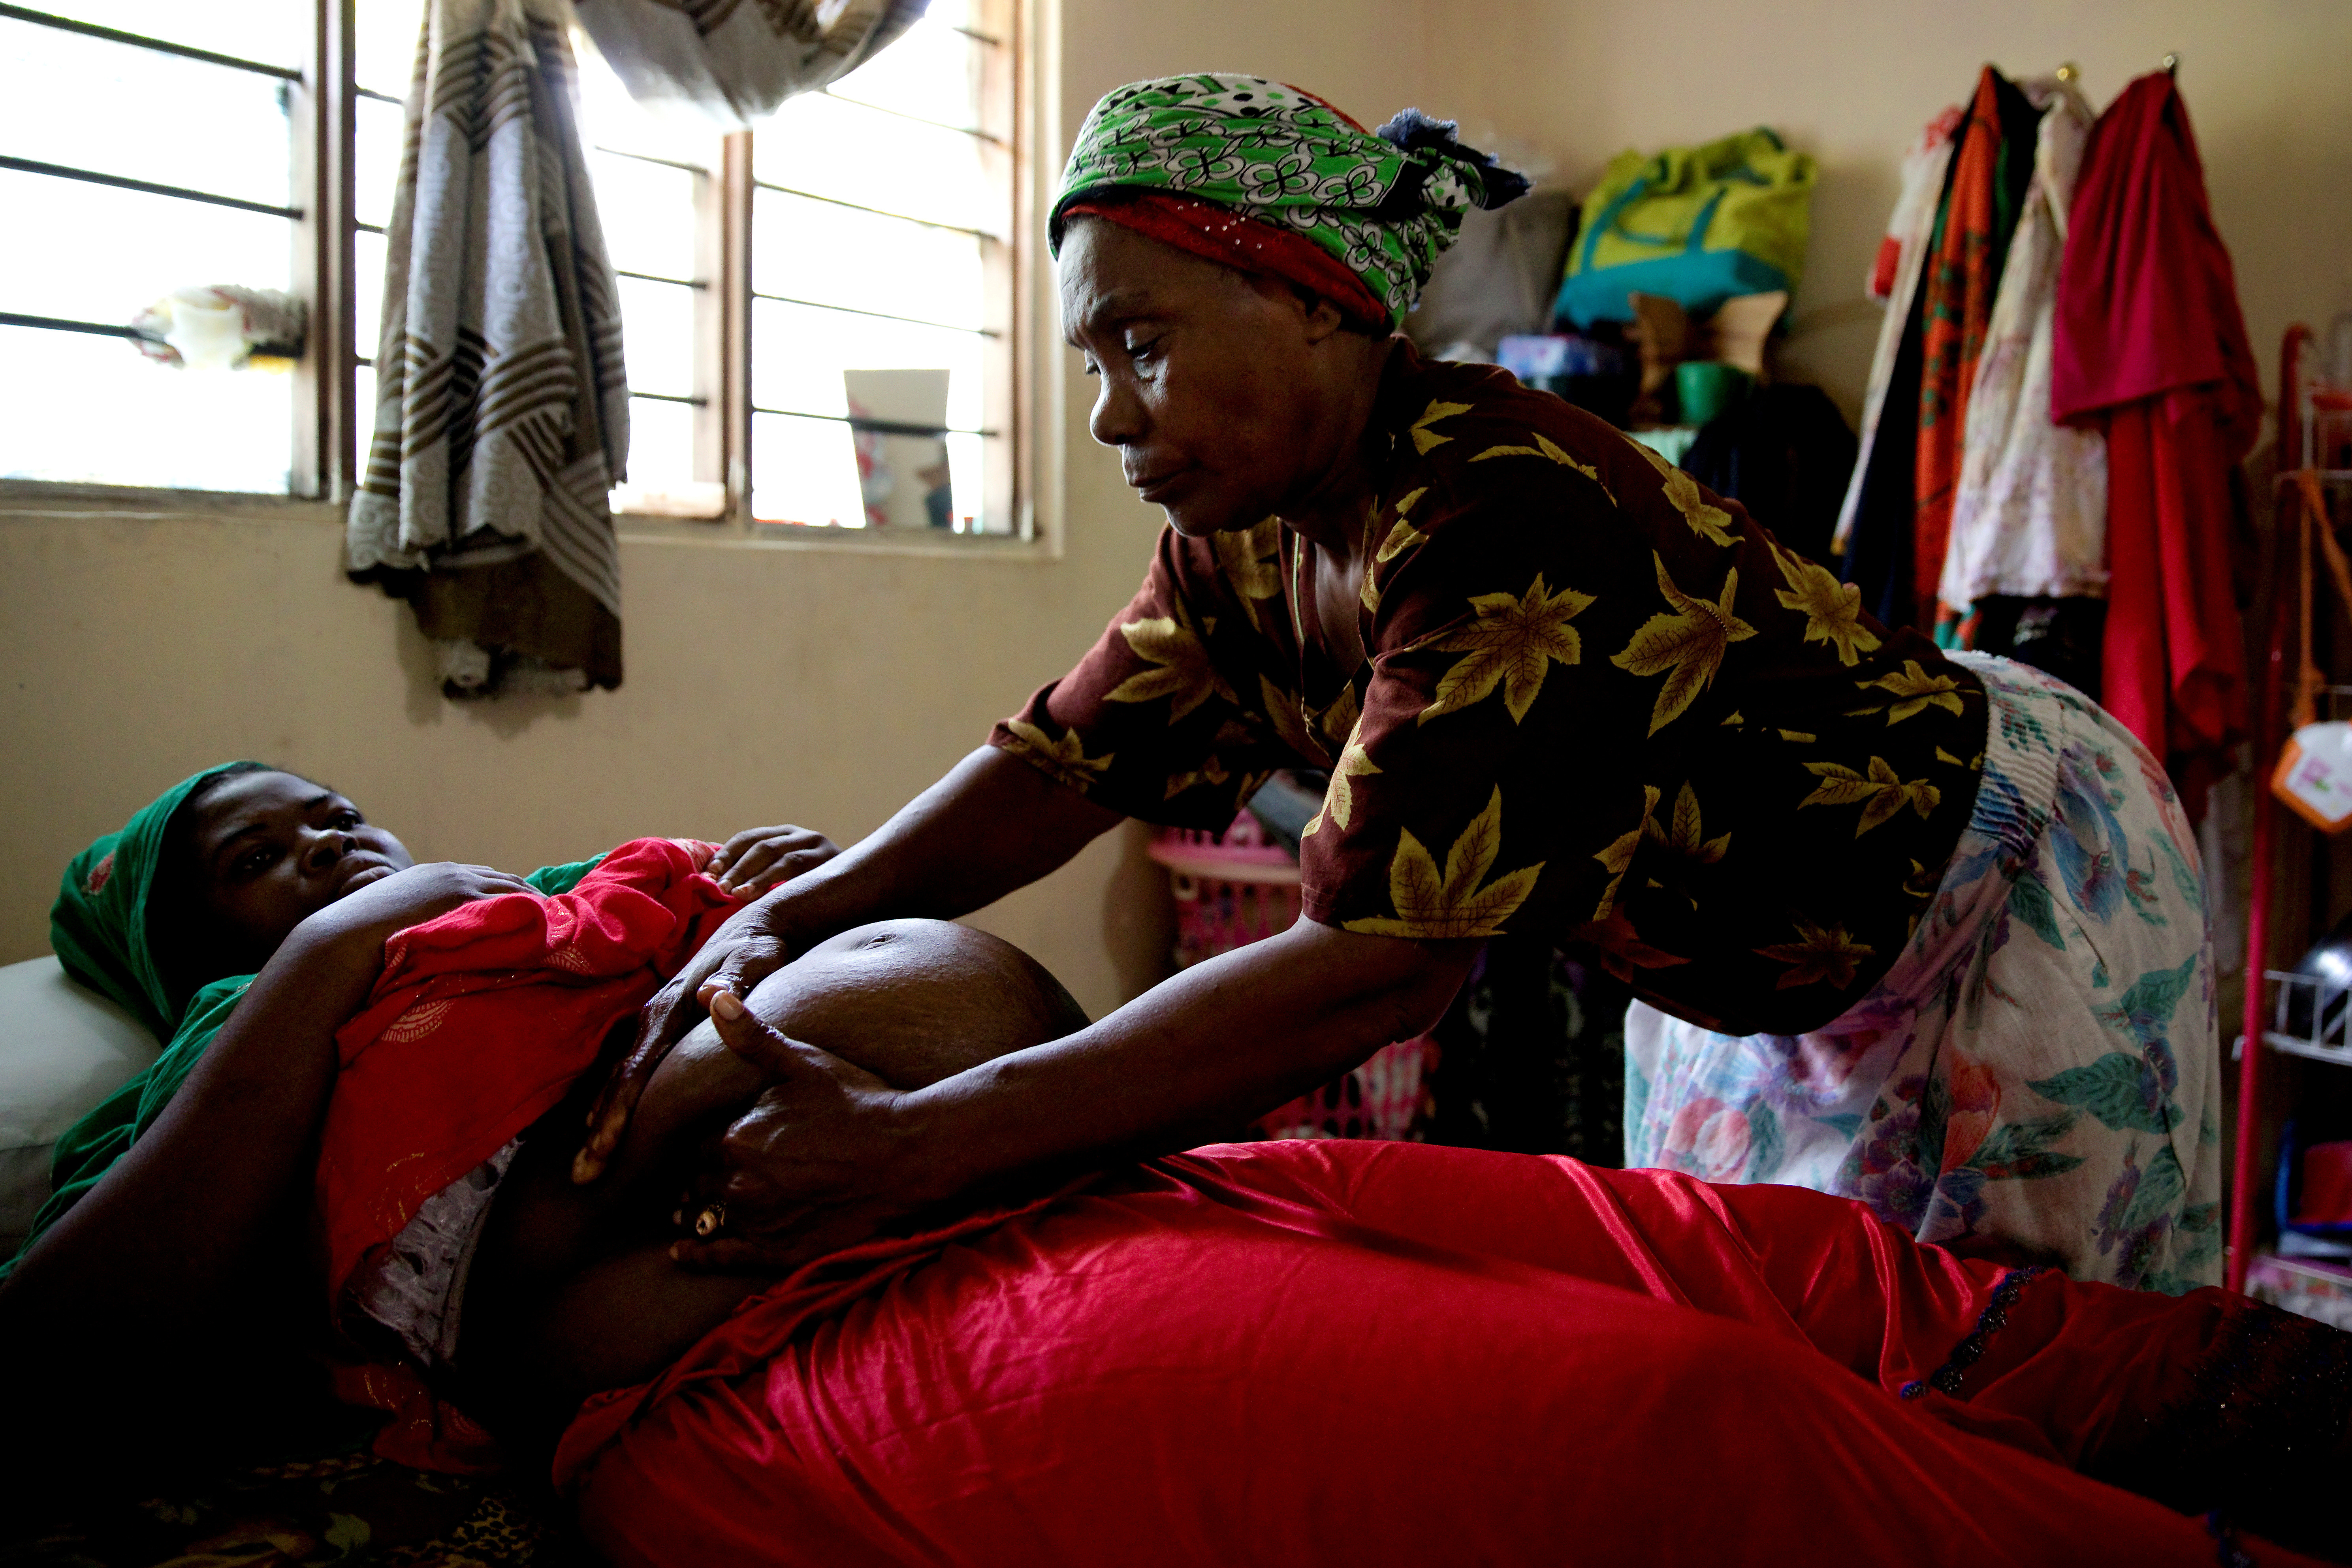 What's needed to ensure maternal health for women in vulnerable populations